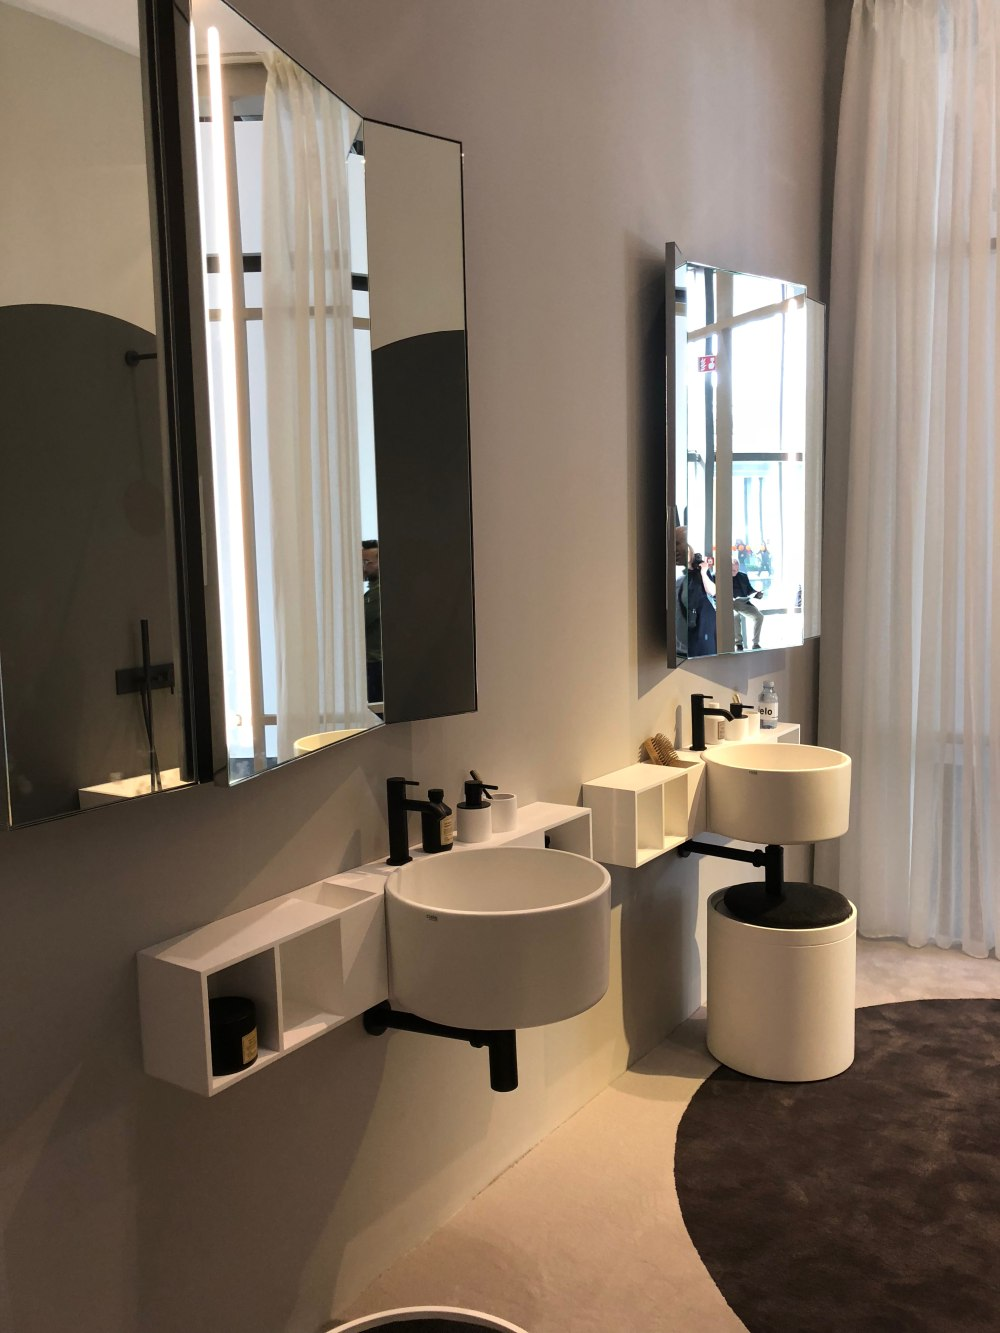 The design and geometry of both the vanities and the mirror add a lot of character to the room